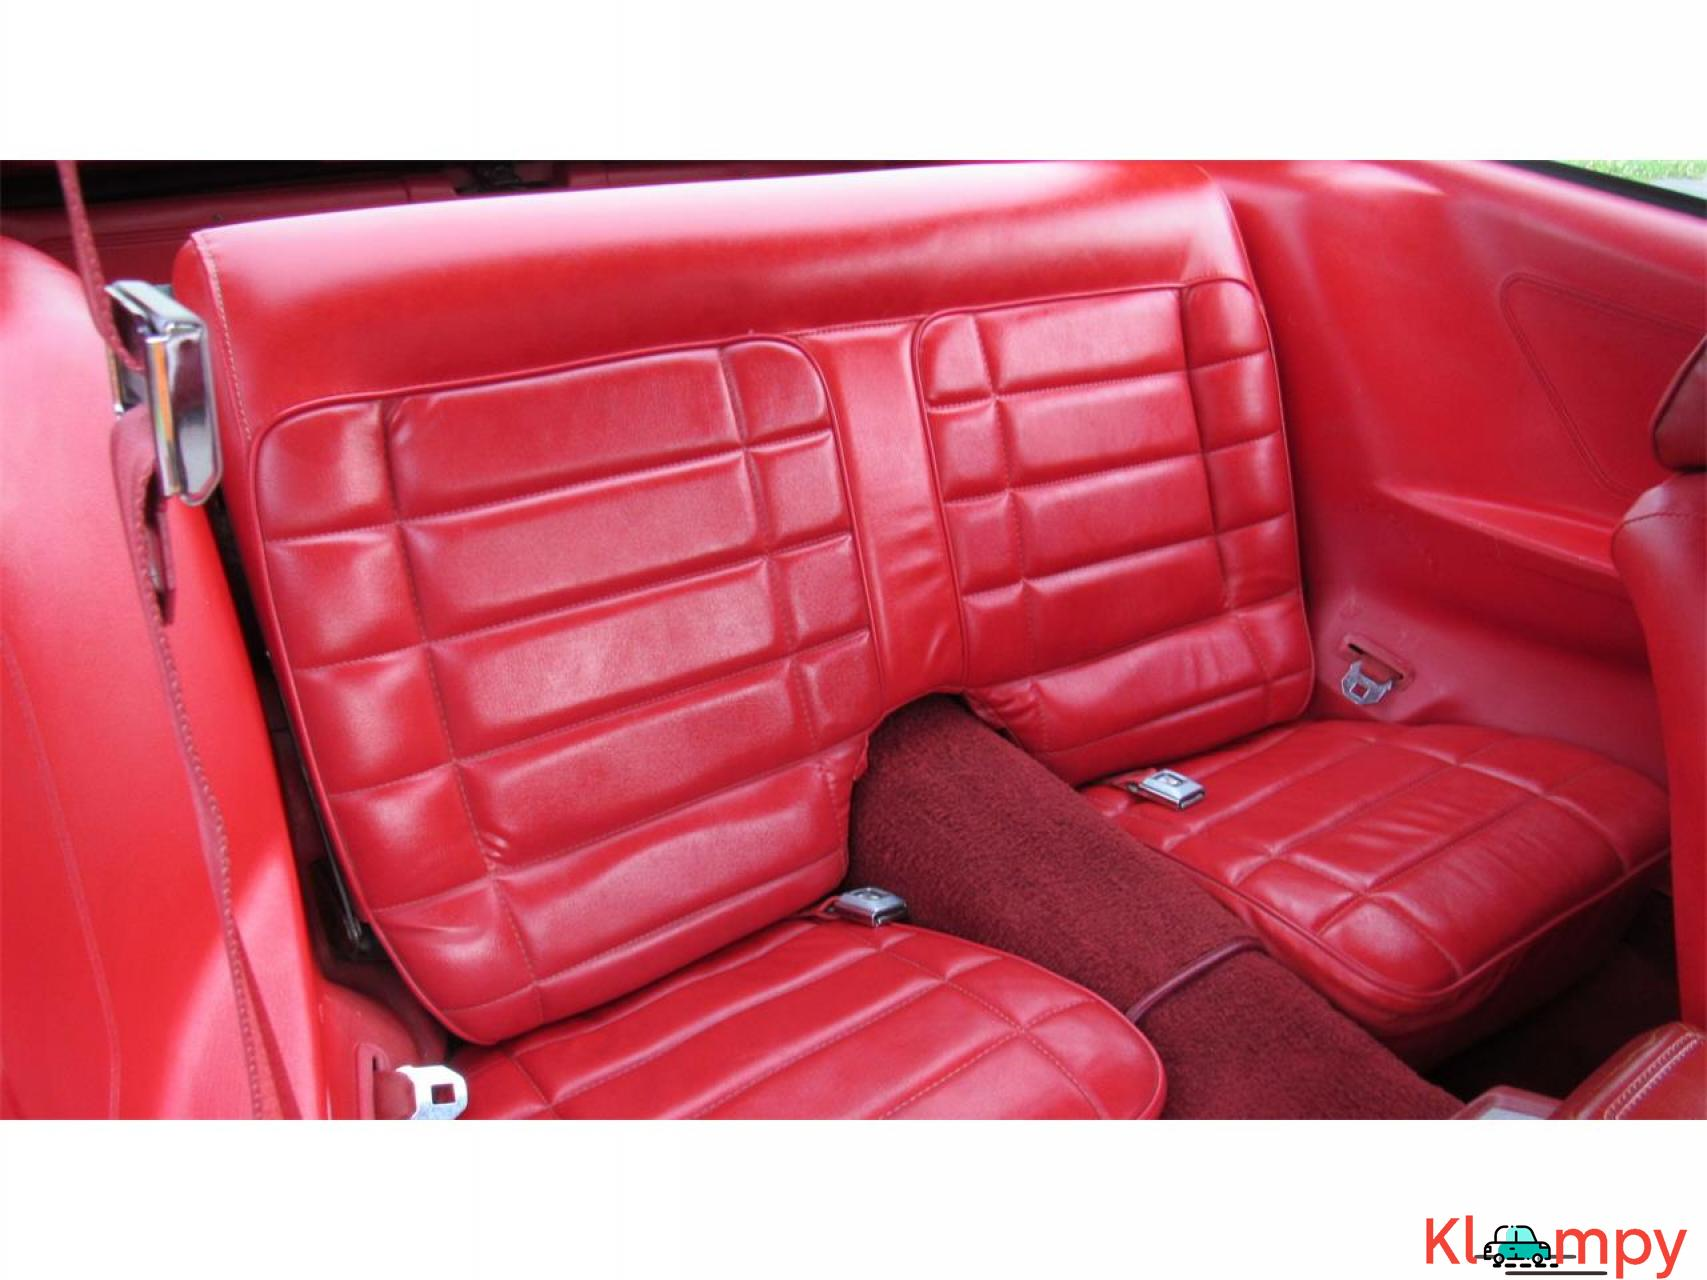 1978 Ford Mustang 302ci V8 Red - 14/17